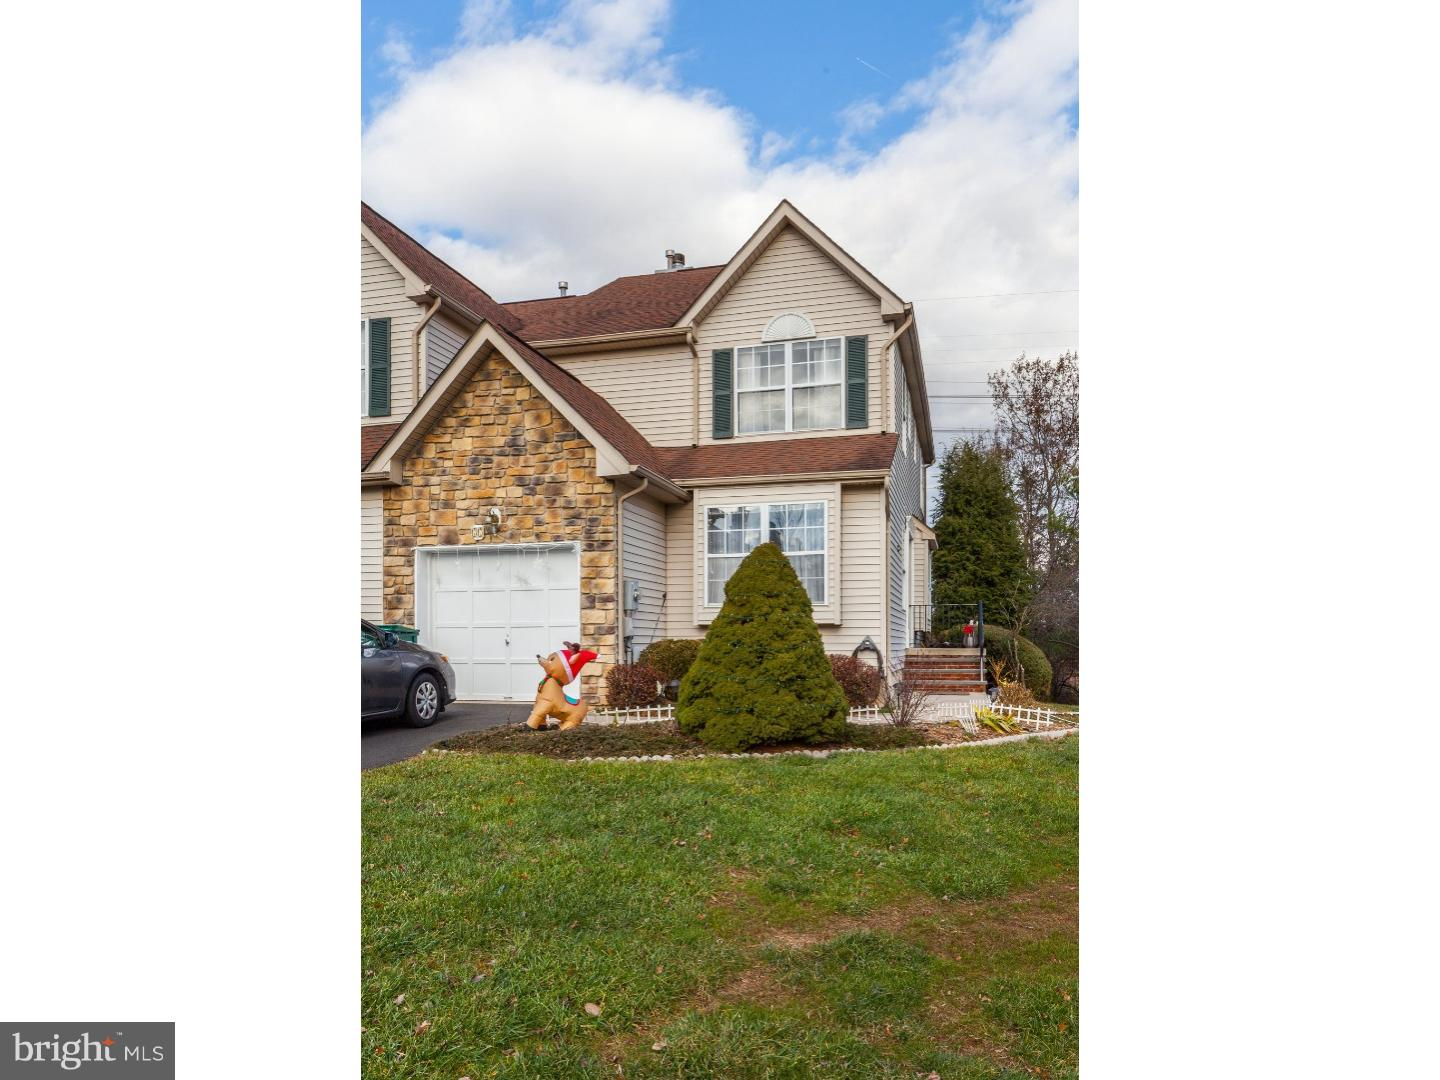 77 DEWITT LANE, HILLSBOROUGH, NJ 08844